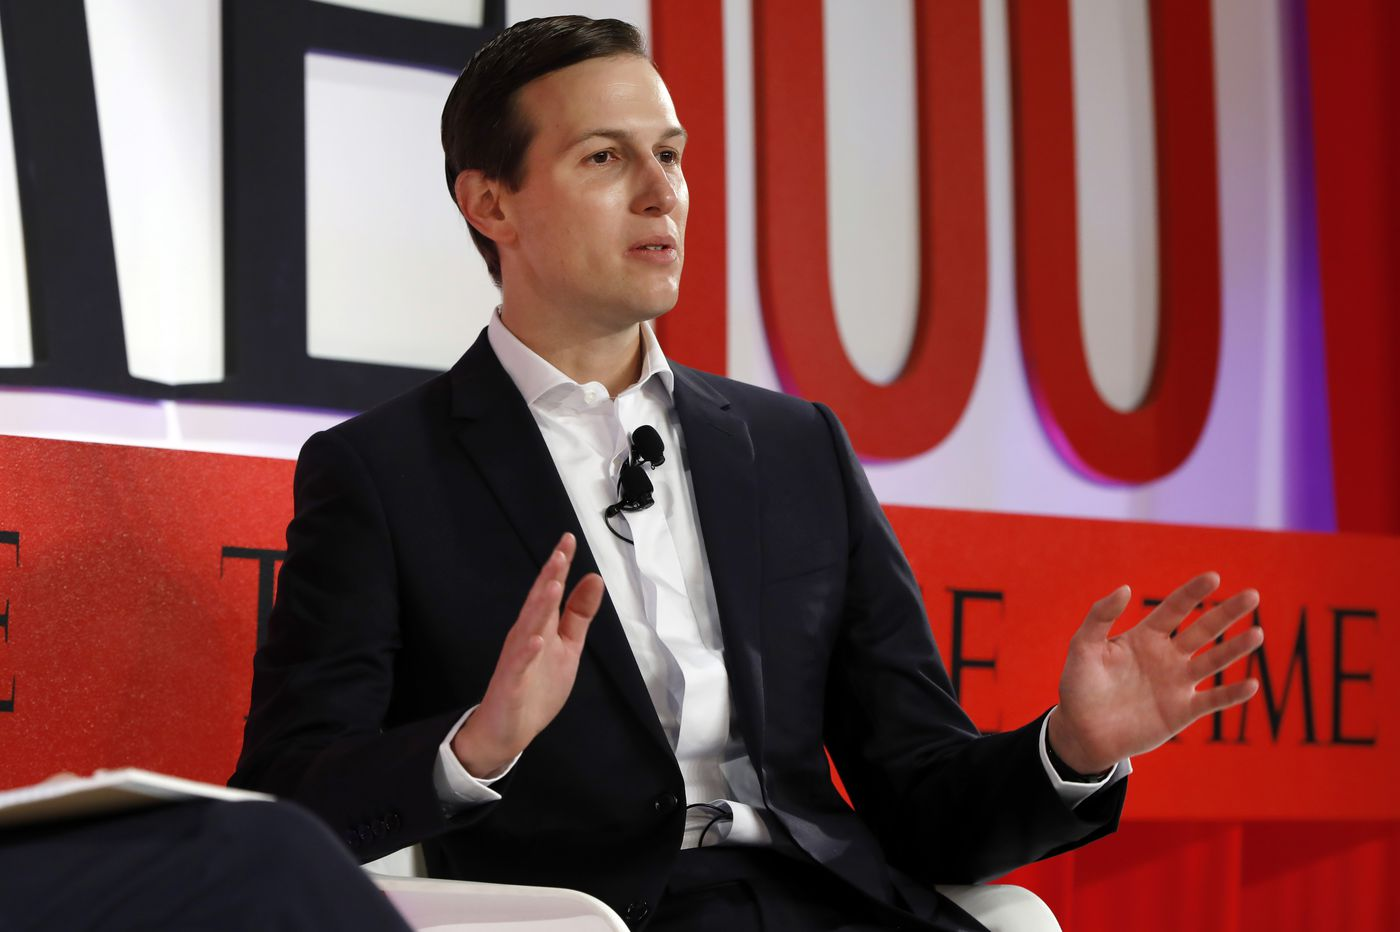 Kushner plays down Russia's interference in 2016 election